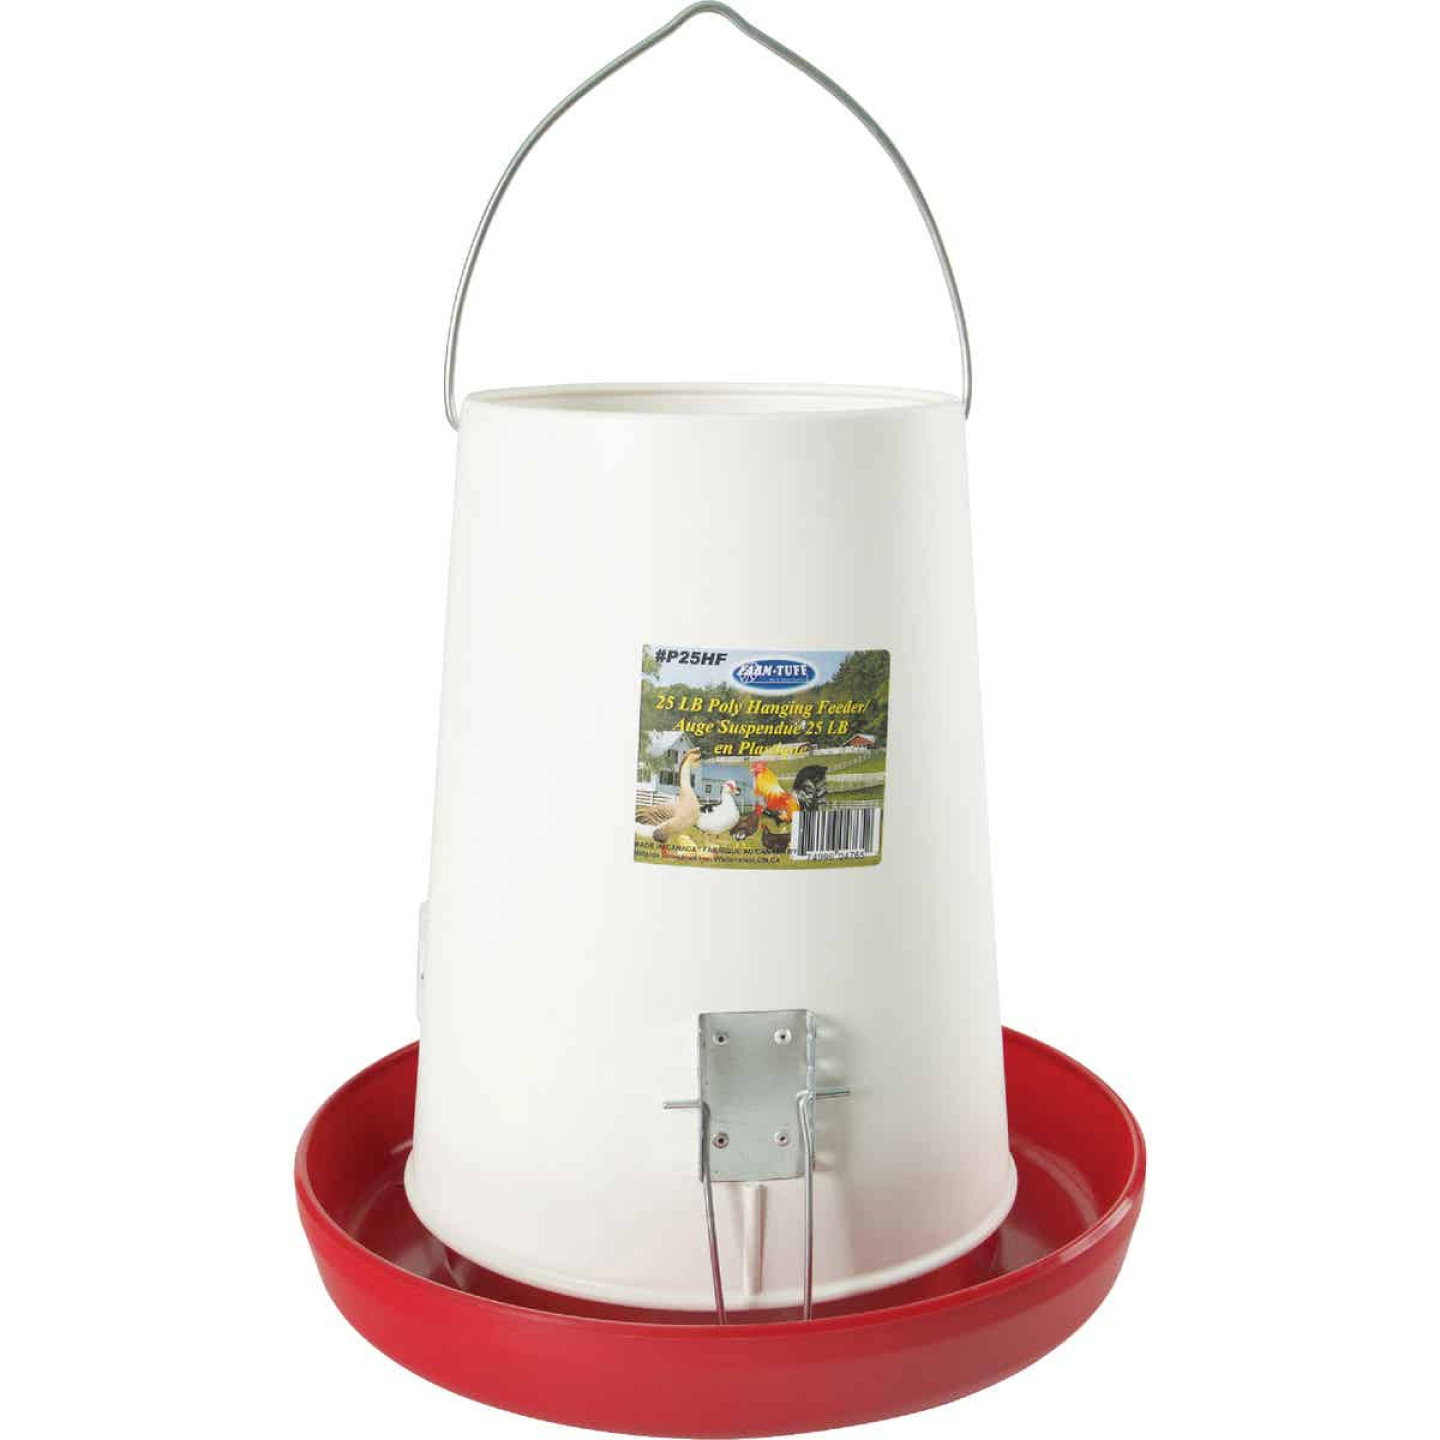 Farm-Tuff 25 Lb. Capacity Hanging Plastic Poultry Feeder Image 2